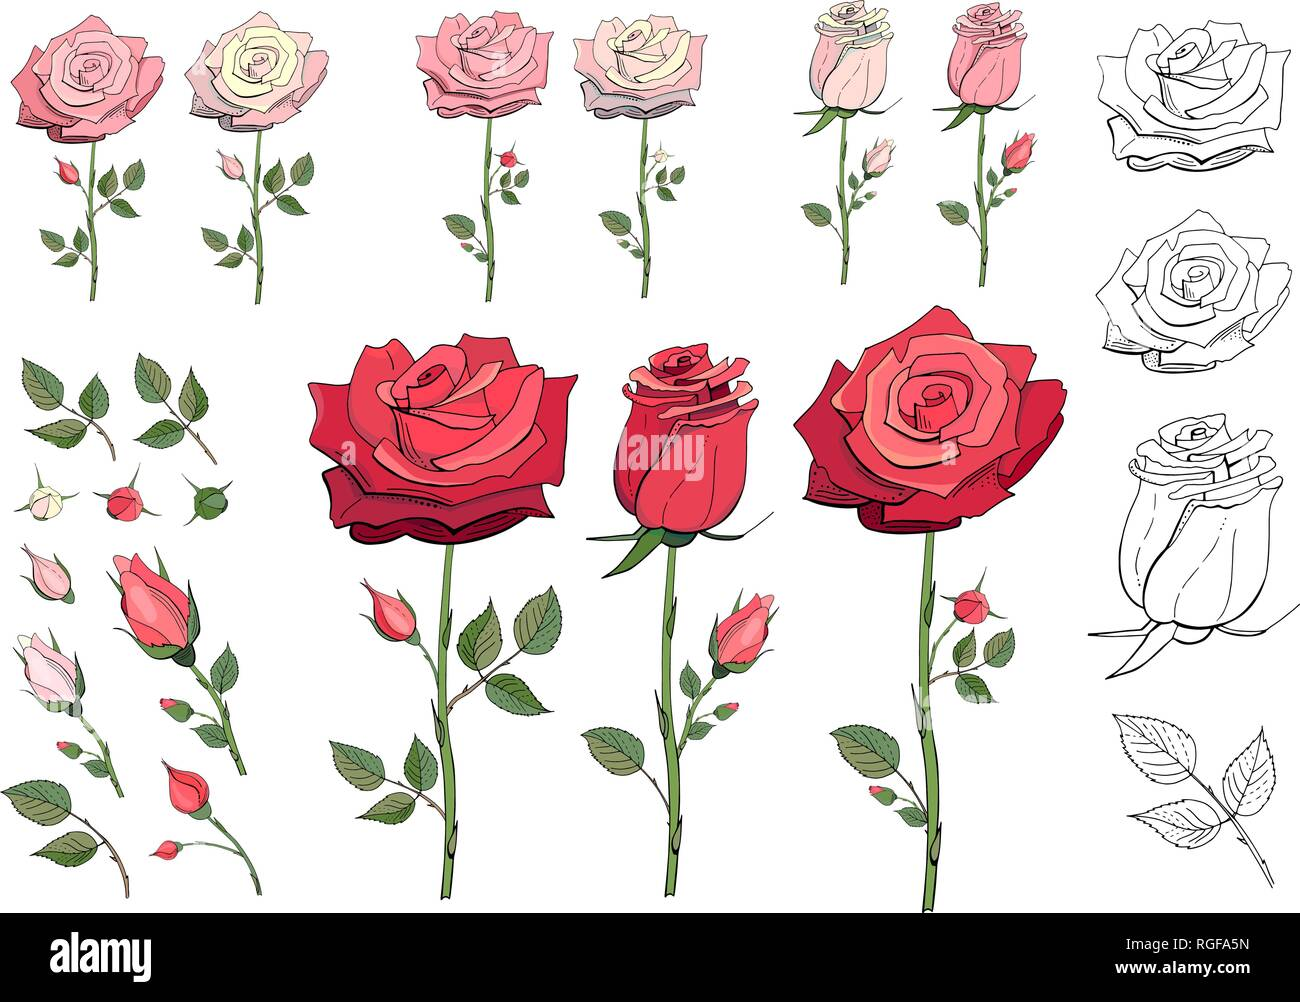 Set of floral elements. Red, pink, white roses. Objects isolated on a white background. Vector illustration EPS 10 file - Stock Image